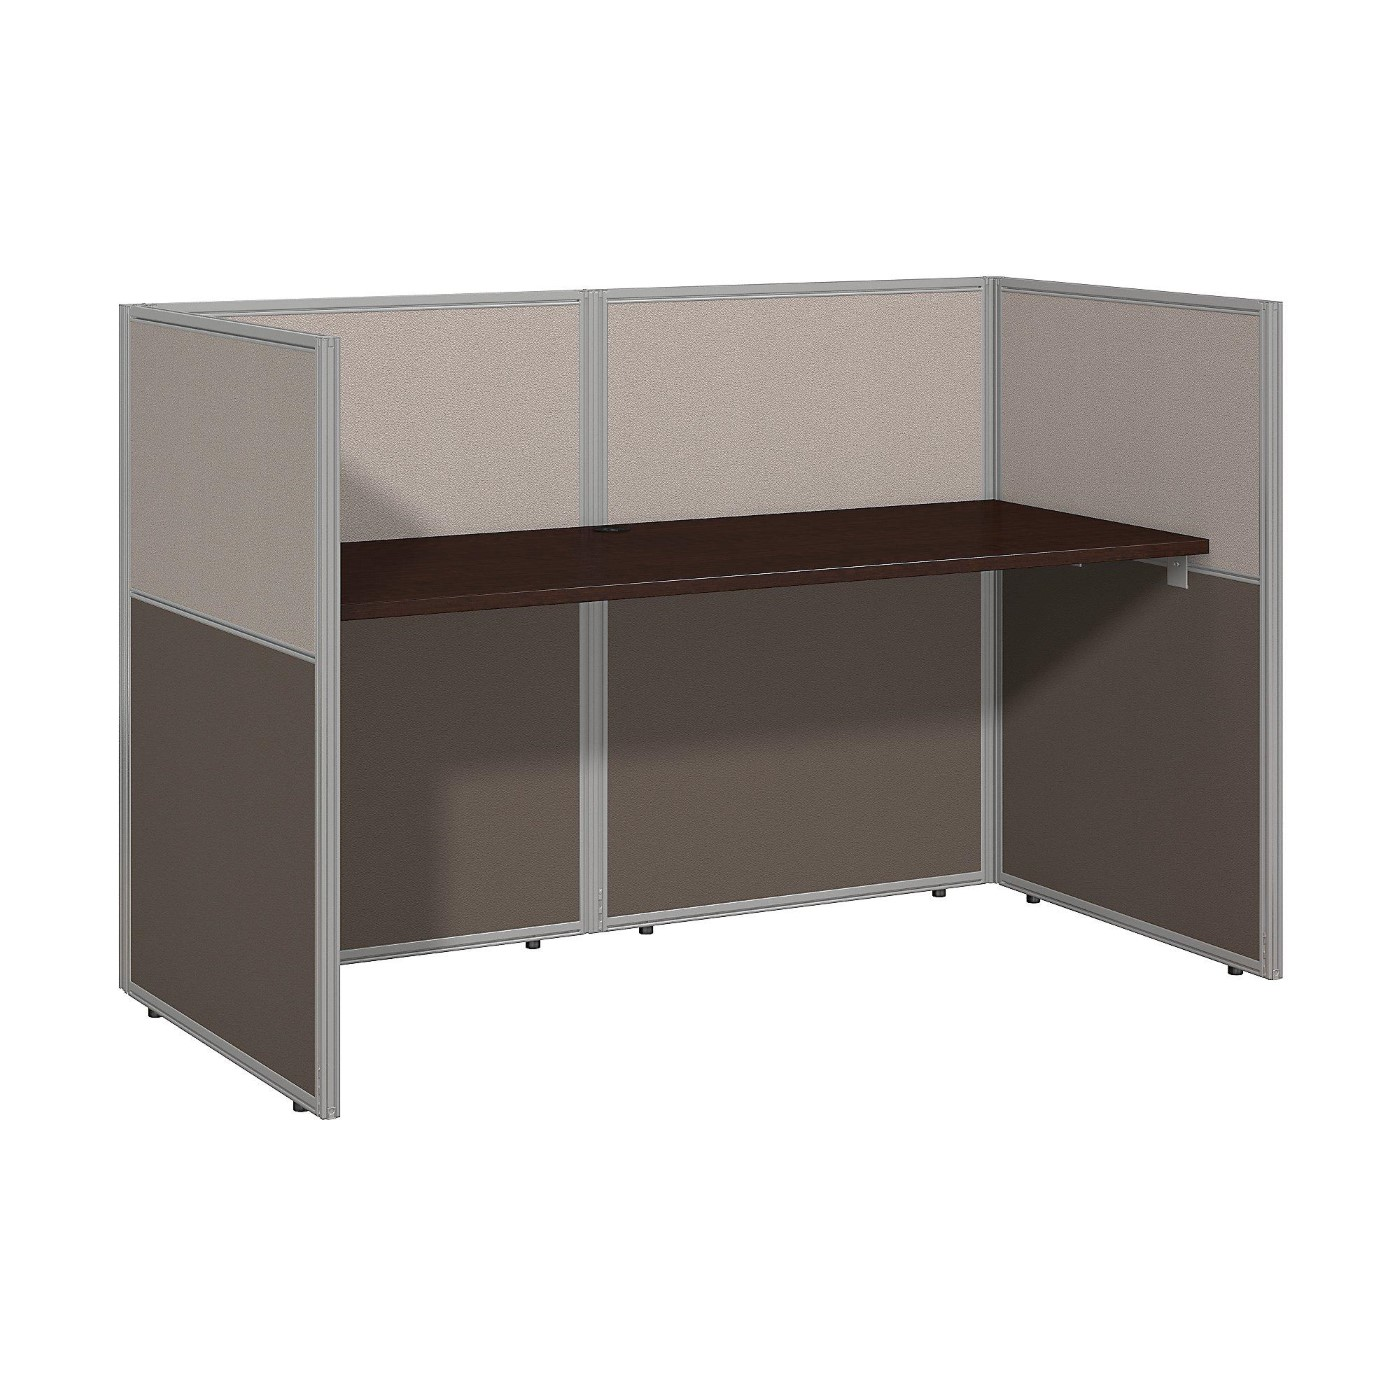 <font color=#c60><b>BUSH BUSINESS FURNITURE EASY OFFICE 60W STRAIGHT DESK CLOSED OFFICE. FREE SHIPPING</font></b></font></b>